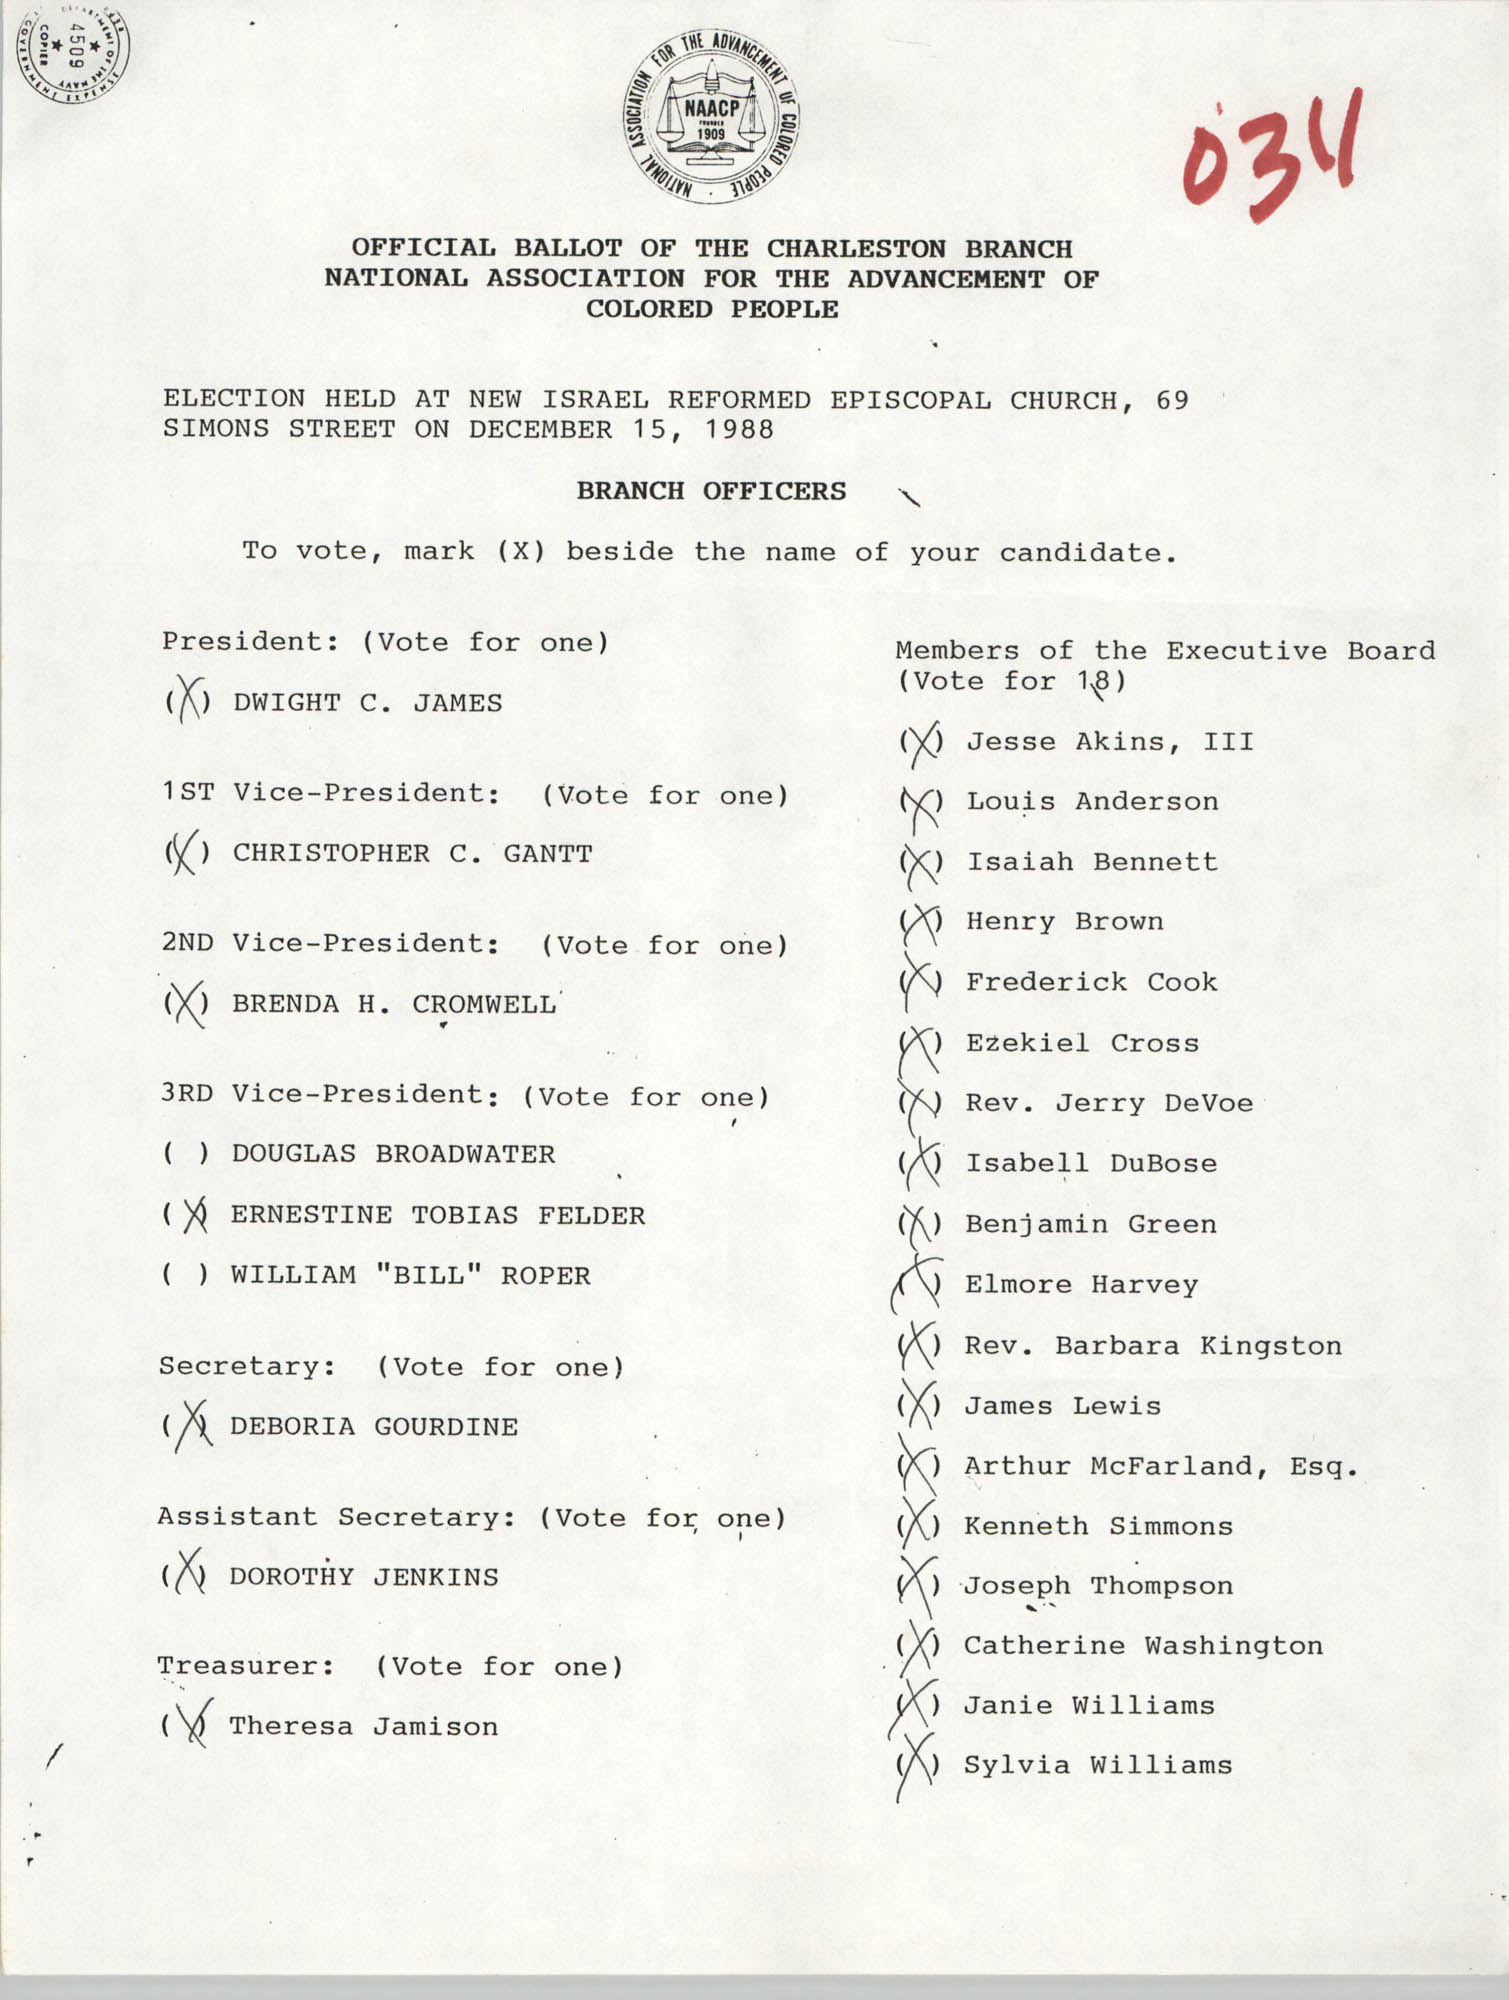 Official Ballot of the Charleston Branch of the NAACP, 034